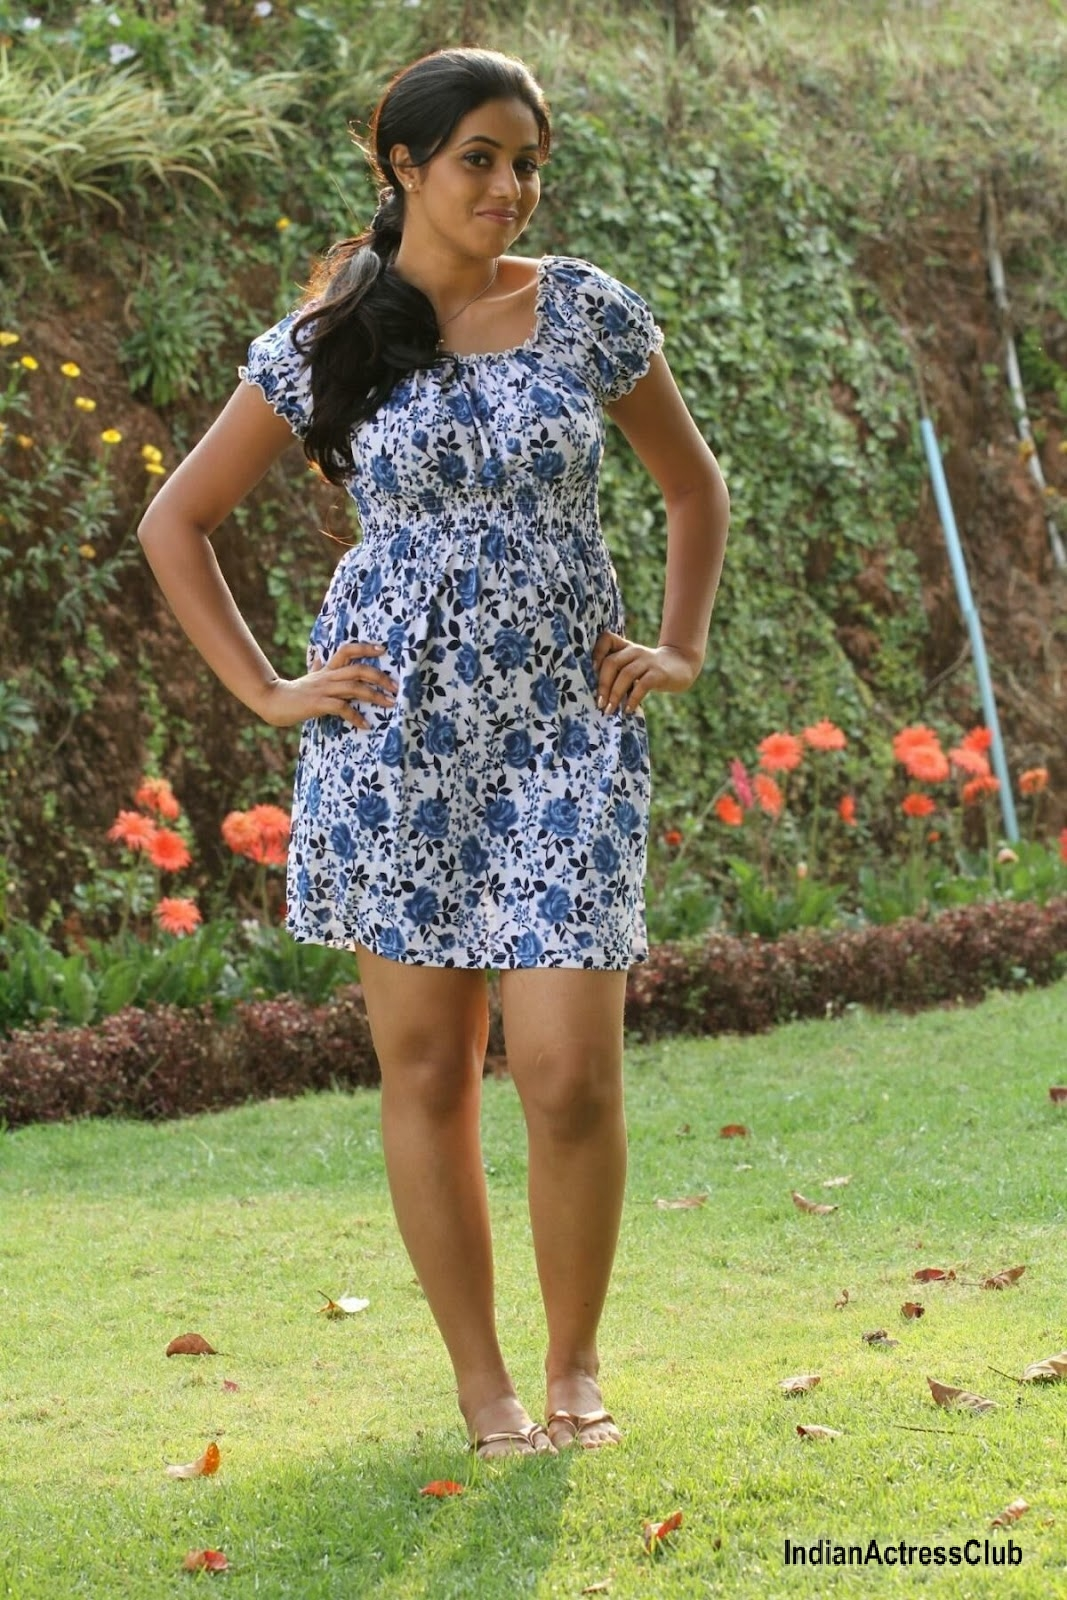 Poorna In Latest Photoshoot Wearing Floral Mini Gown -9752